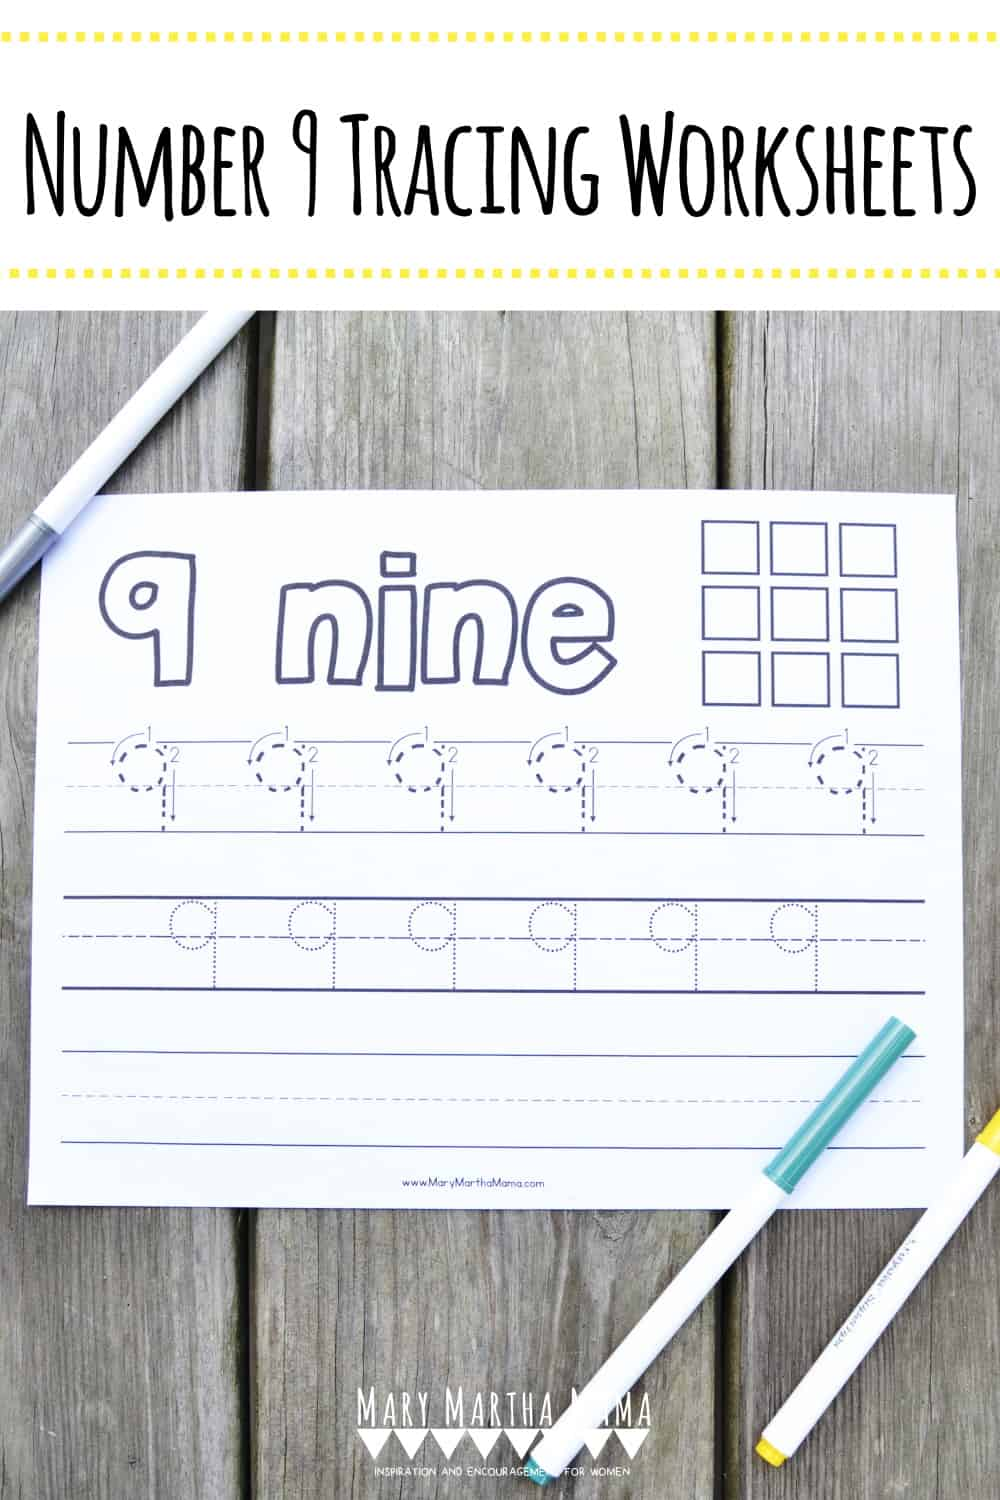 Use this free printable Number 9 Tracing Worksheet to help your kiddo learn how to write number 9.  Features tracing with and without arrows to guide.